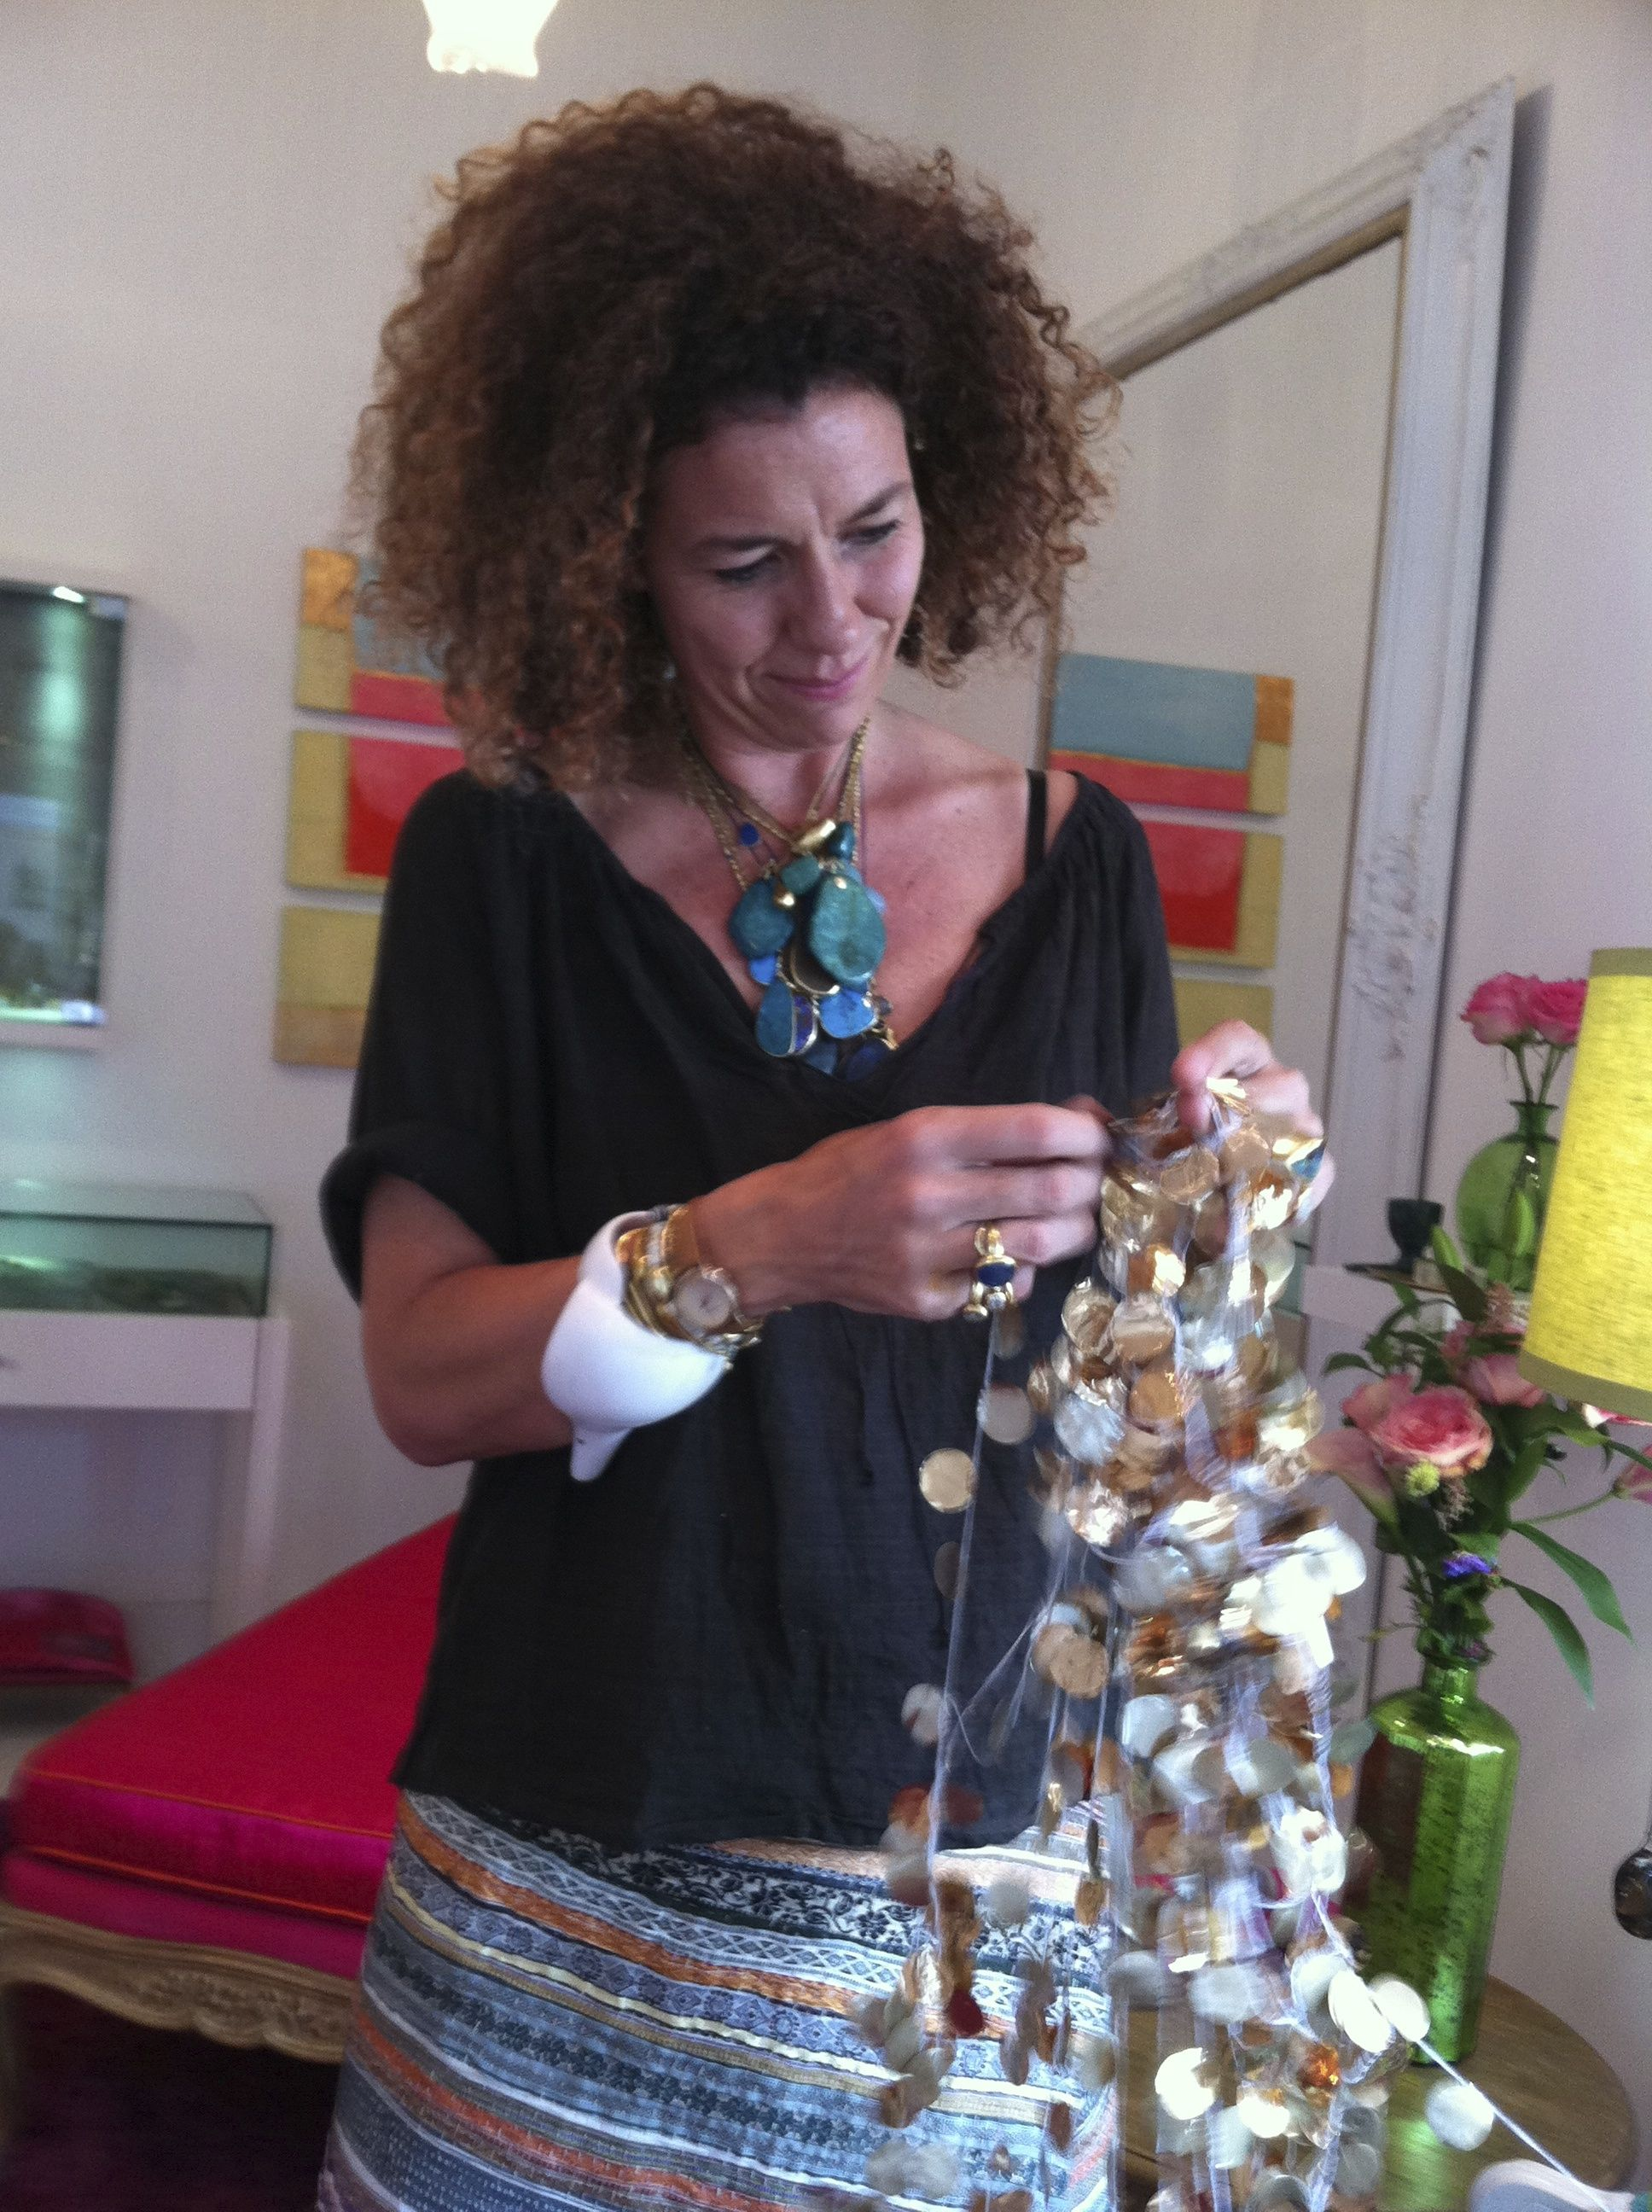 Wearing jewels she designed, a Paul Smith watch and a groovy giant shell bracelet given to her by African artisans, Pippa Small prepares gilded window display materials during a summer 2014 visit to her Brentwood Country Mart boutique. Photo by Kyle Roderick.